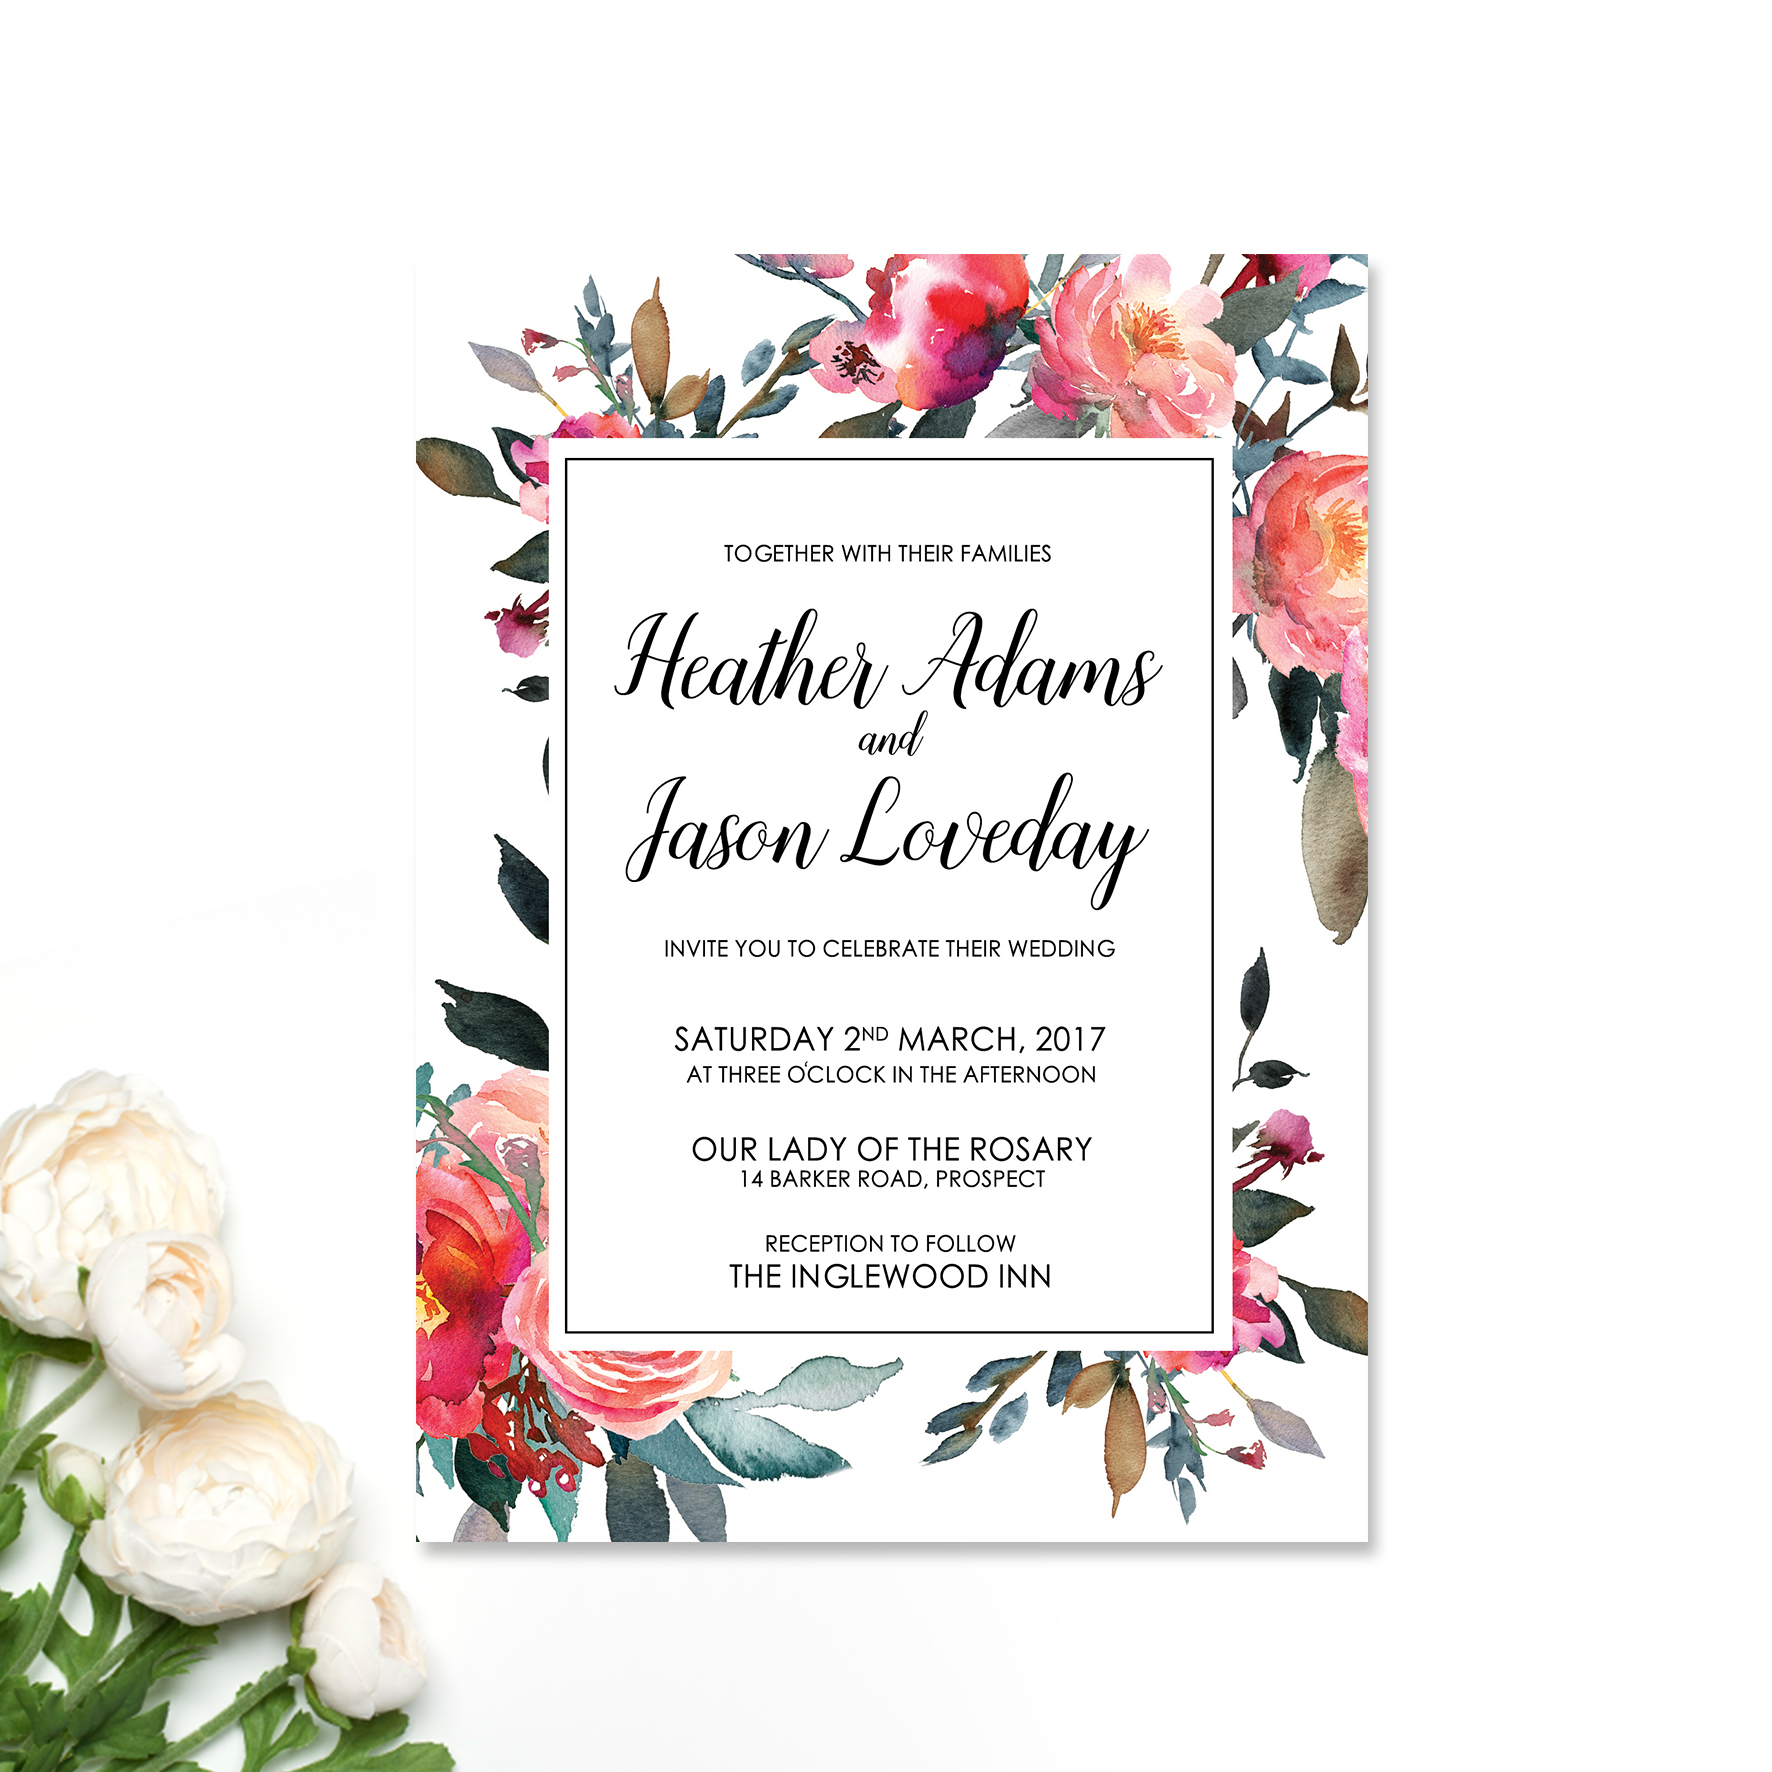 Wintery Floral Wedding Invitation